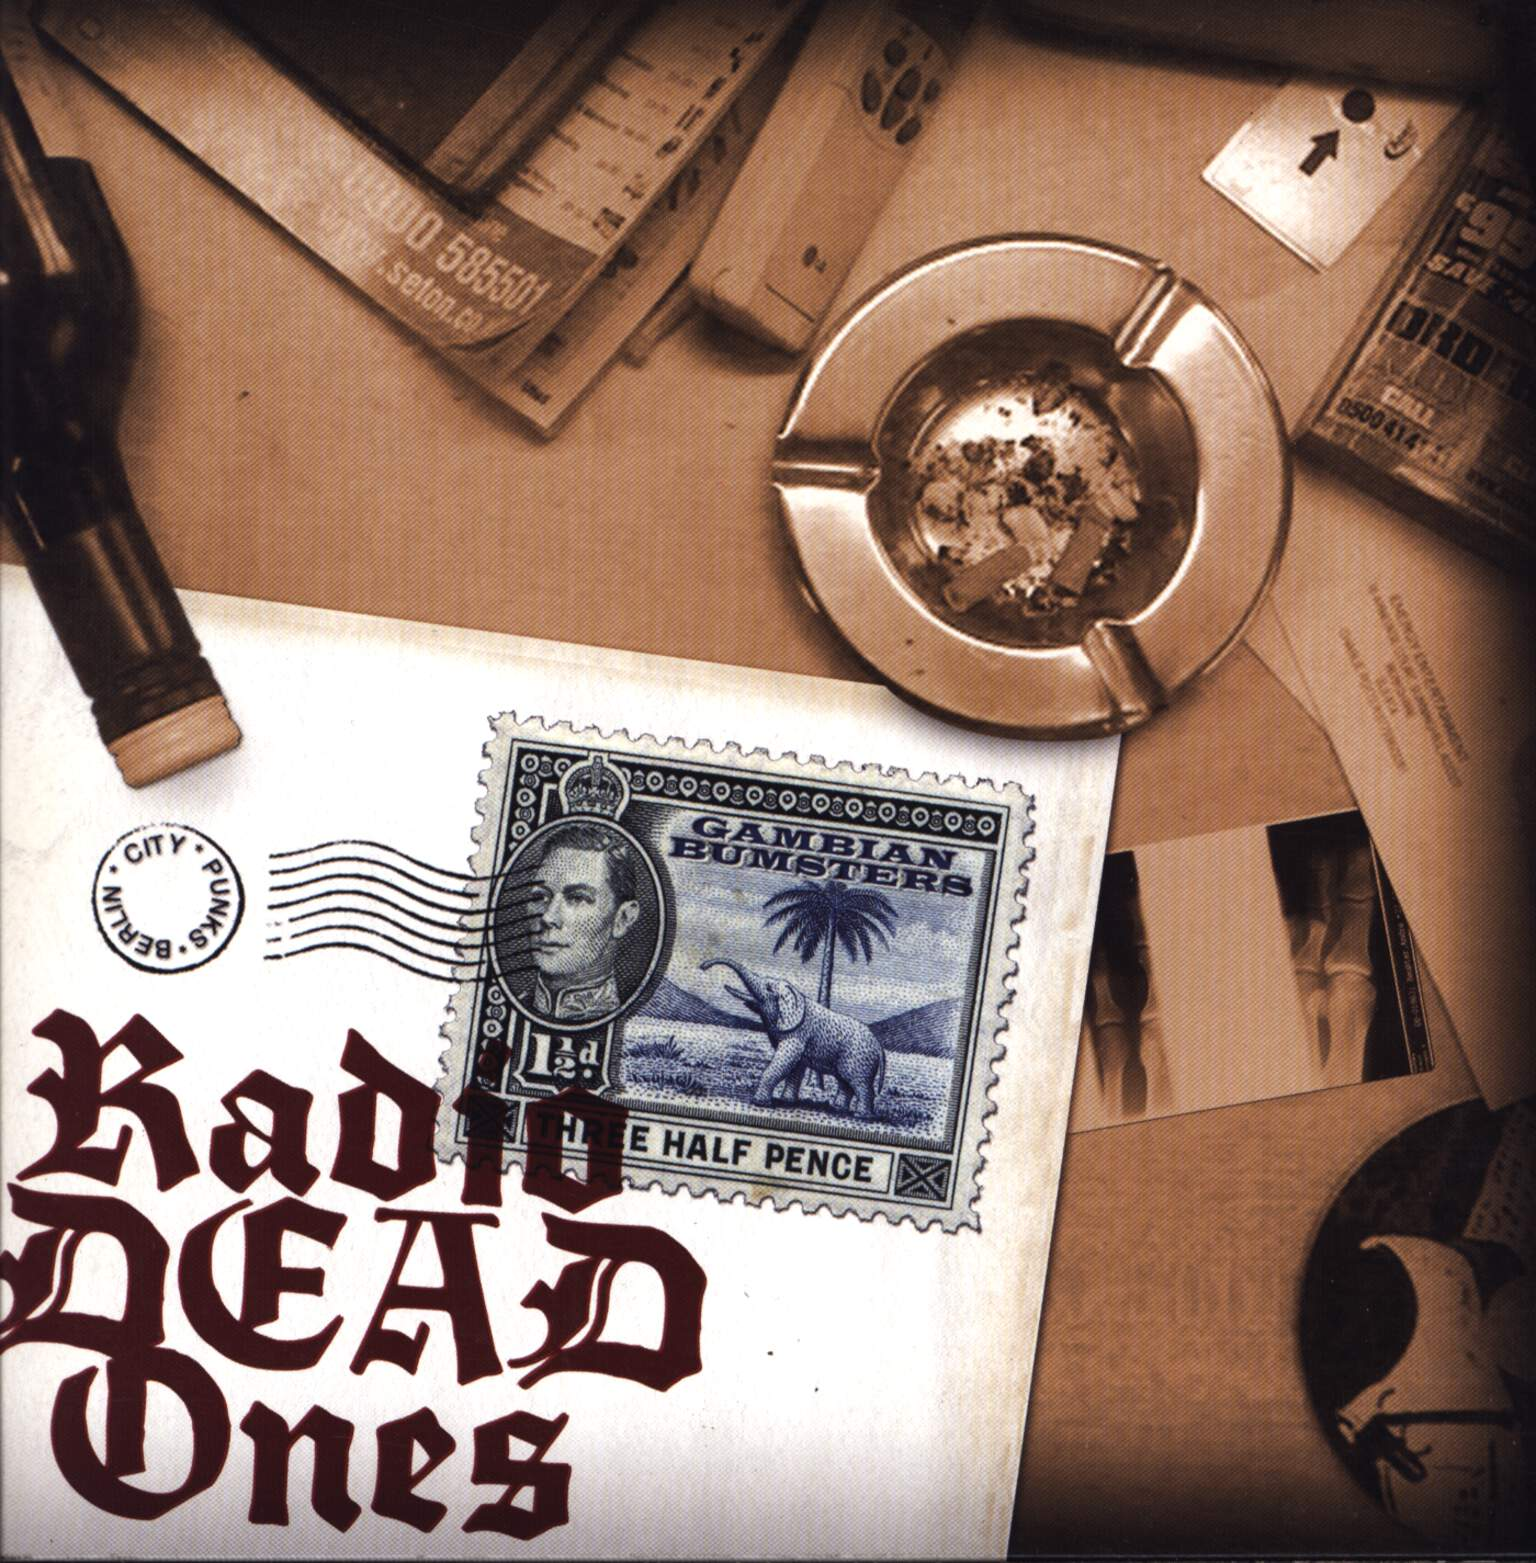 "Radio Dead Ones: Gambian Bumsters, 7"" Single (Vinyl)"